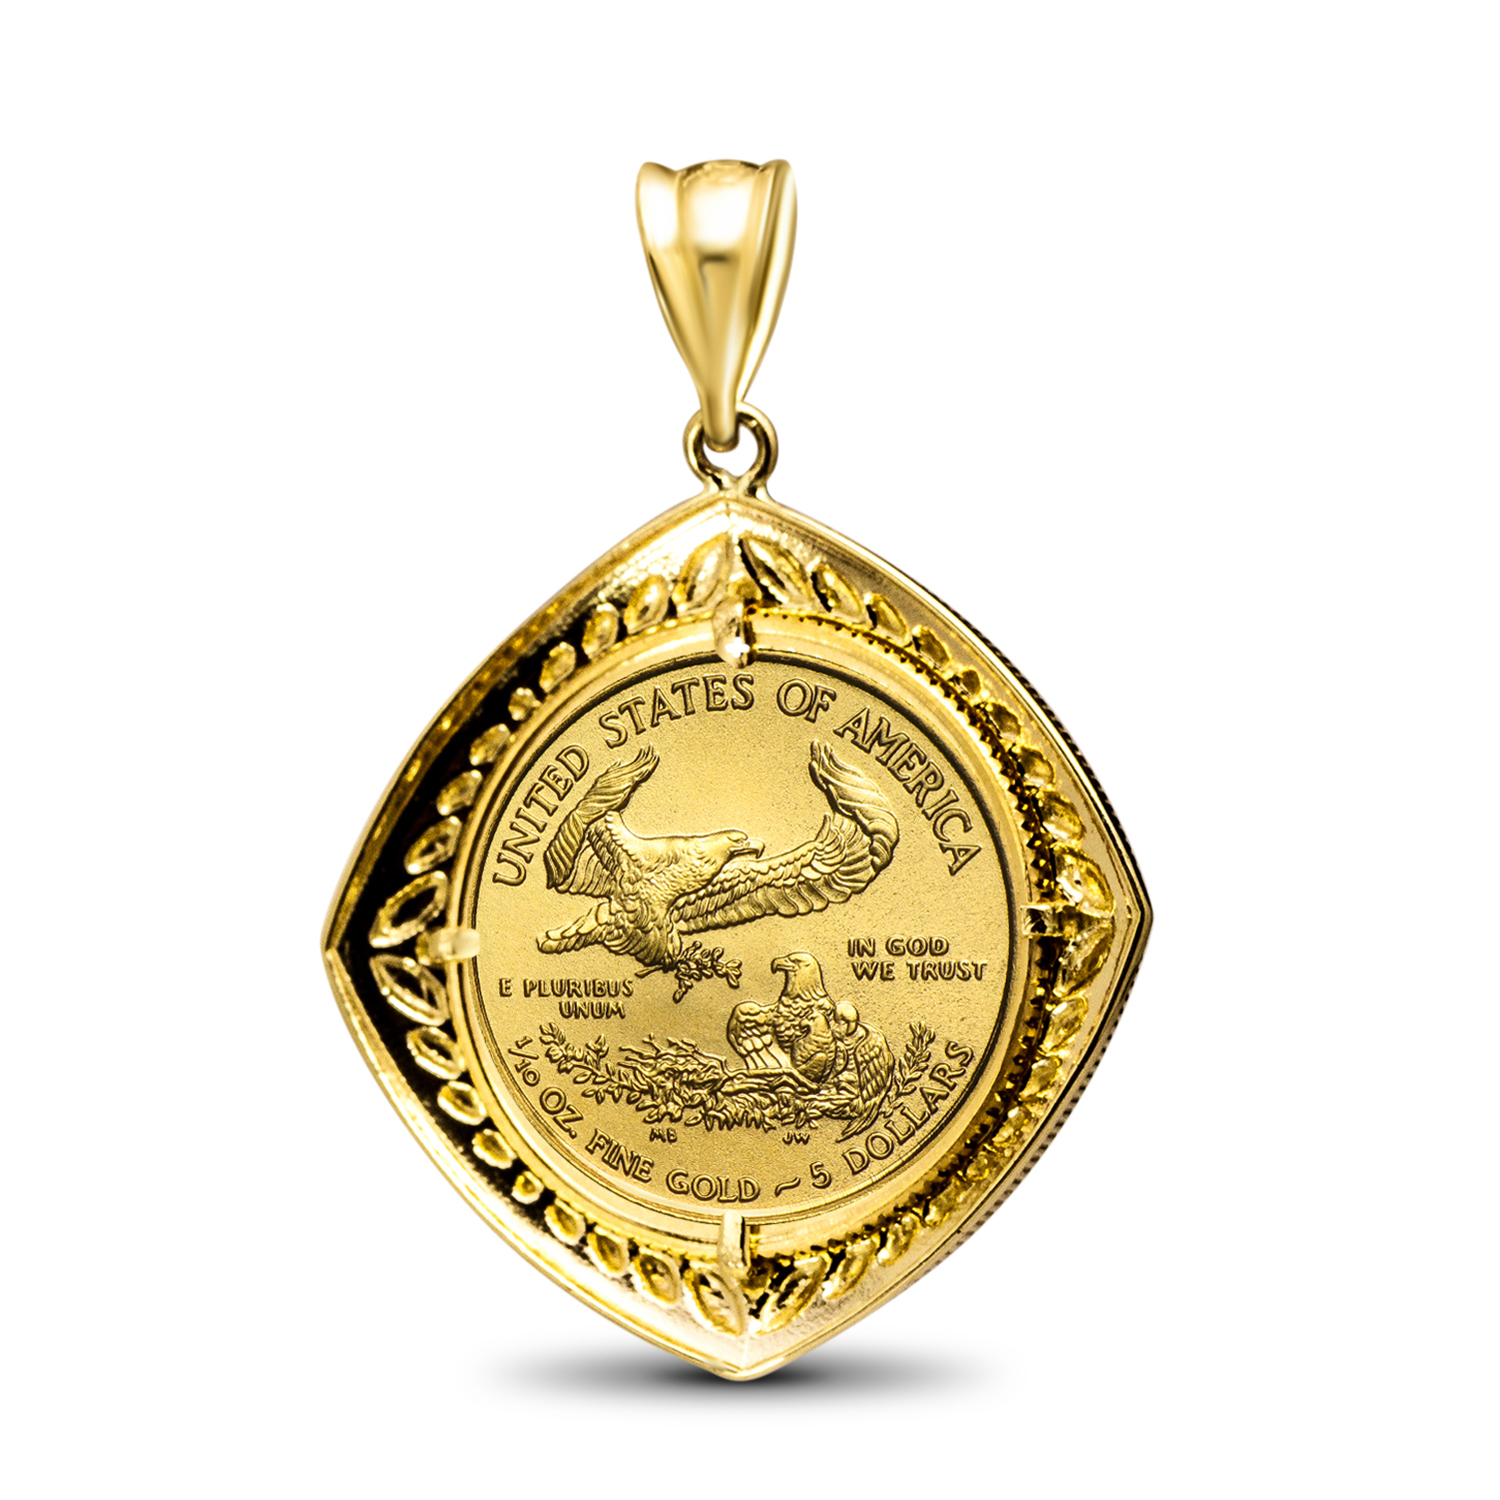 2016 1/10 oz Gold Eagle Pendant (Diamond-Shaped Bezel)